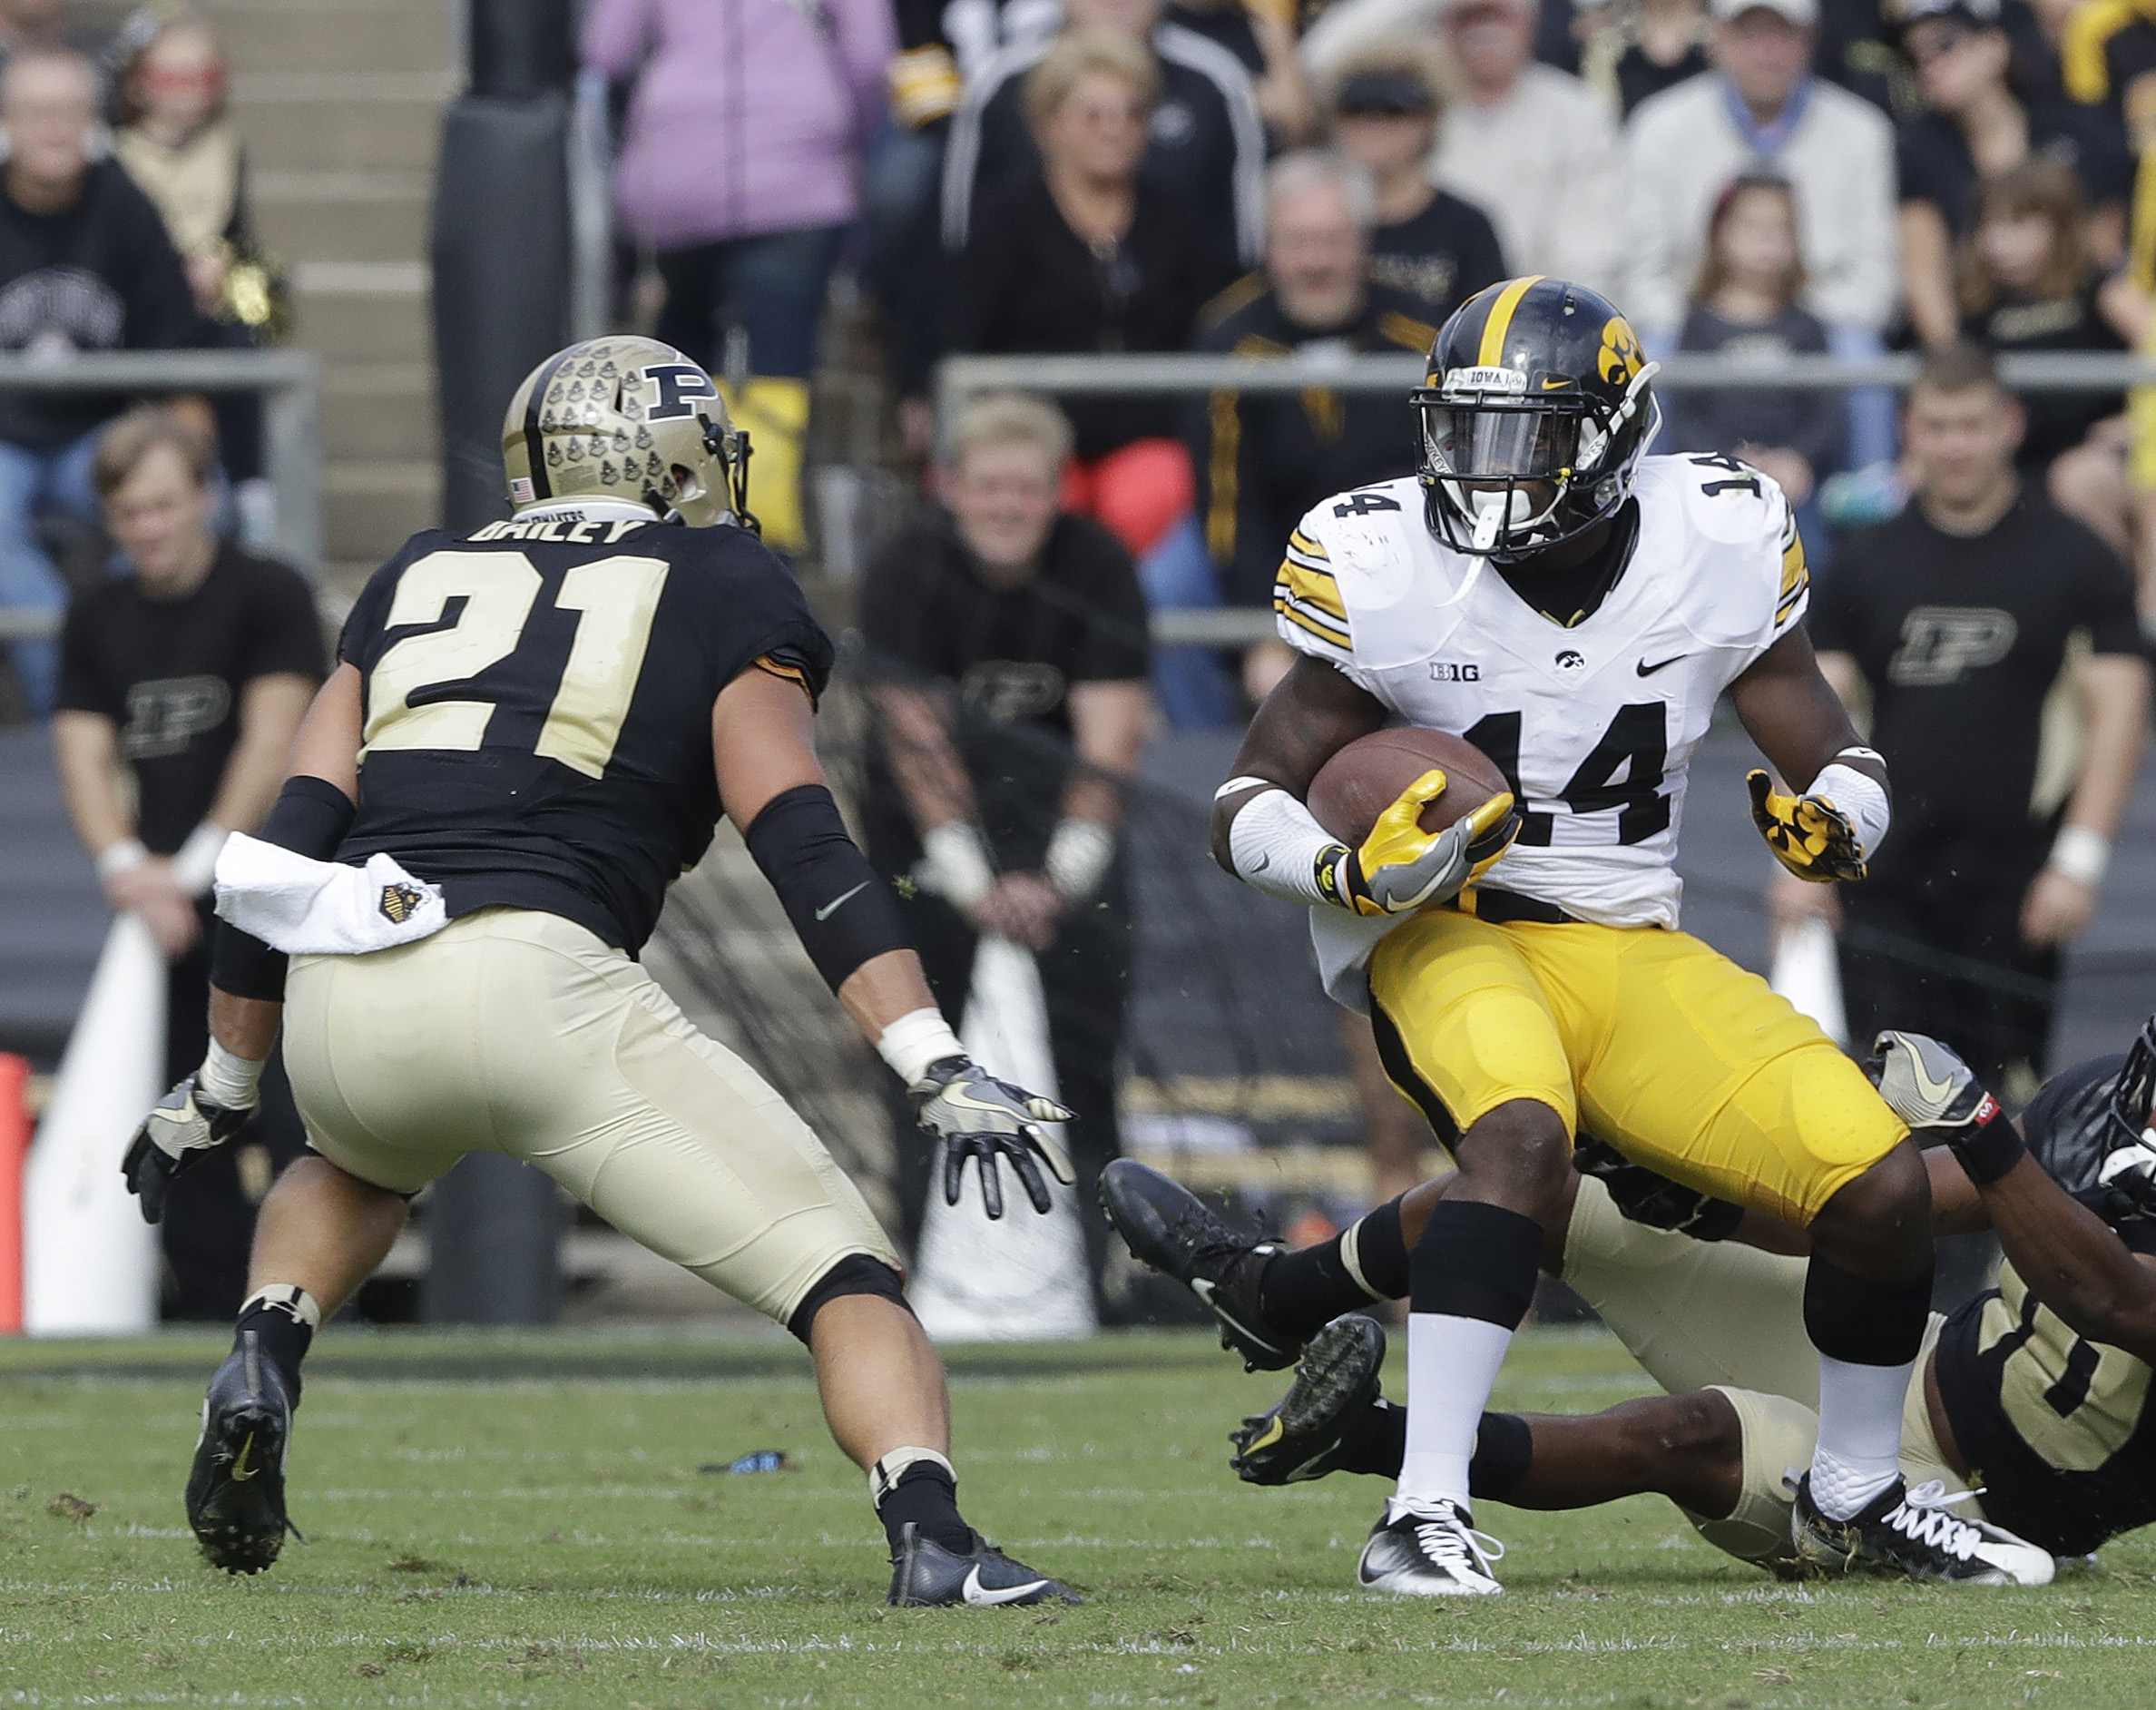 Iowa's Desmond King (14) returns a punt against Purdue's Markus Bailey (21) during the first half of an NCAA college football game, Saturday, Oct. 15, 2016, in West Lafayette, Ind. It's tough to make plays when opposing offenses do everything they can to